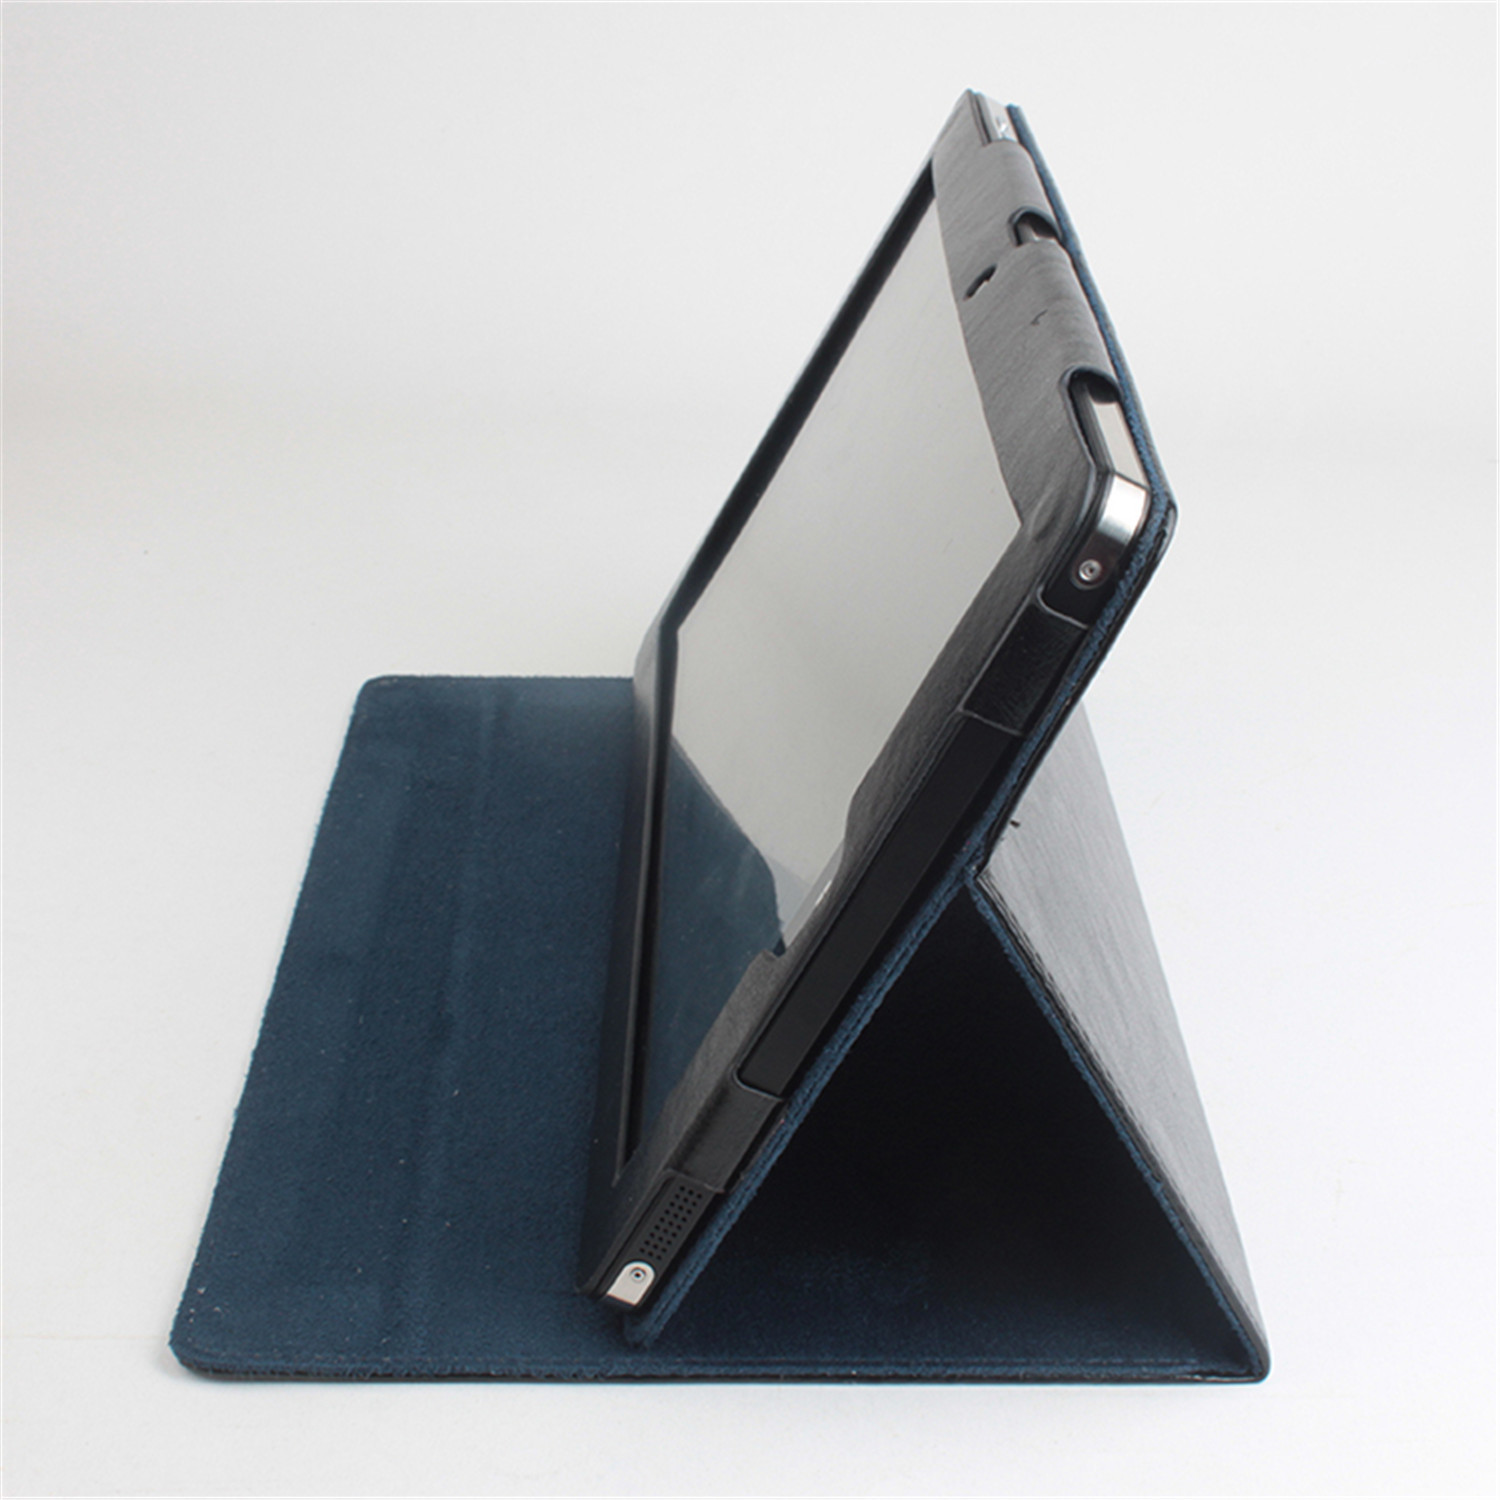 Leather Protective Cover with Stand Function for CHUWI Vi10 Tablet PC Black